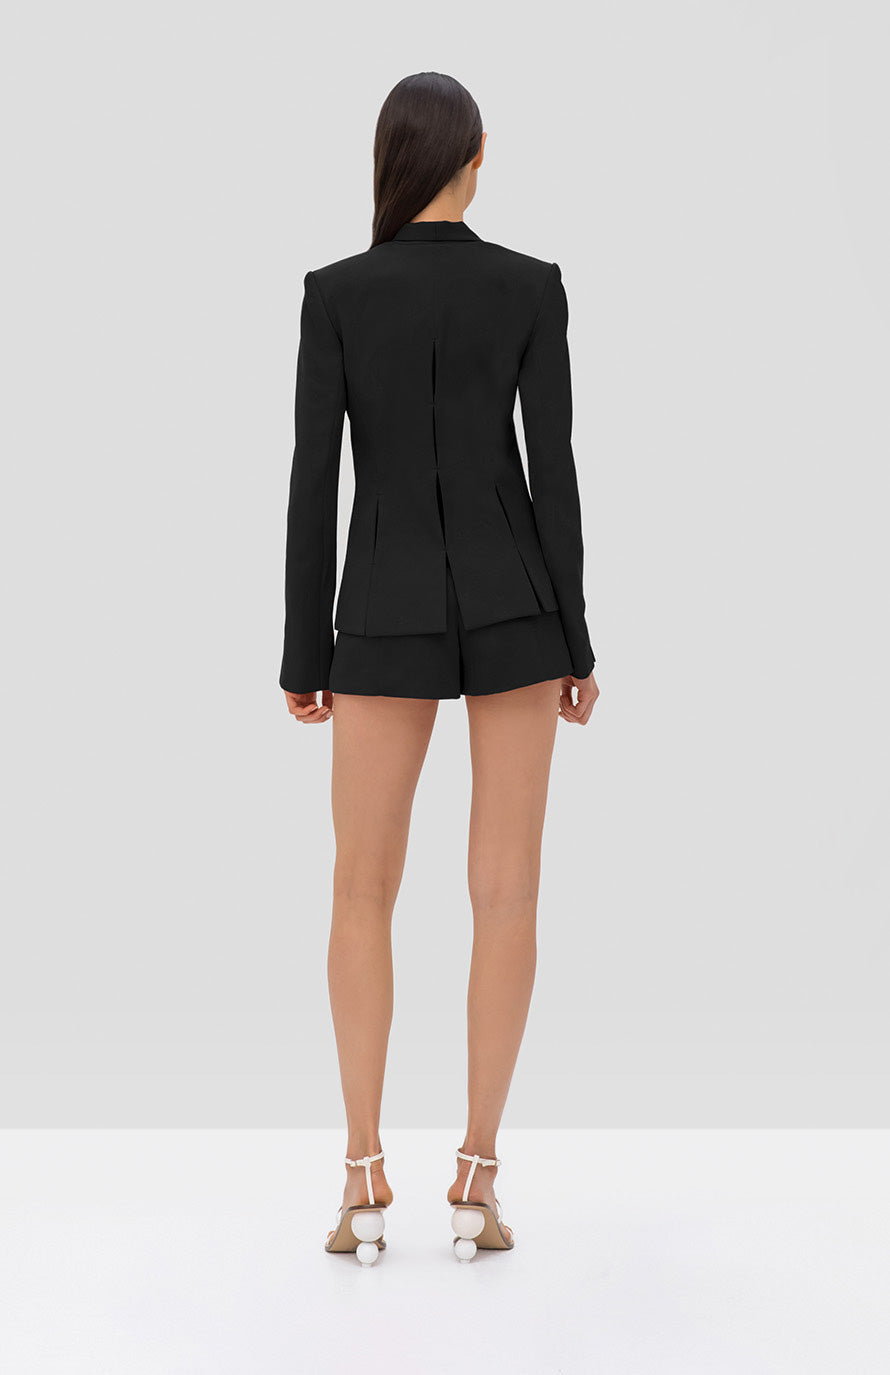 Alexis Vaska Blazer and Mikli Short Black - Rear View